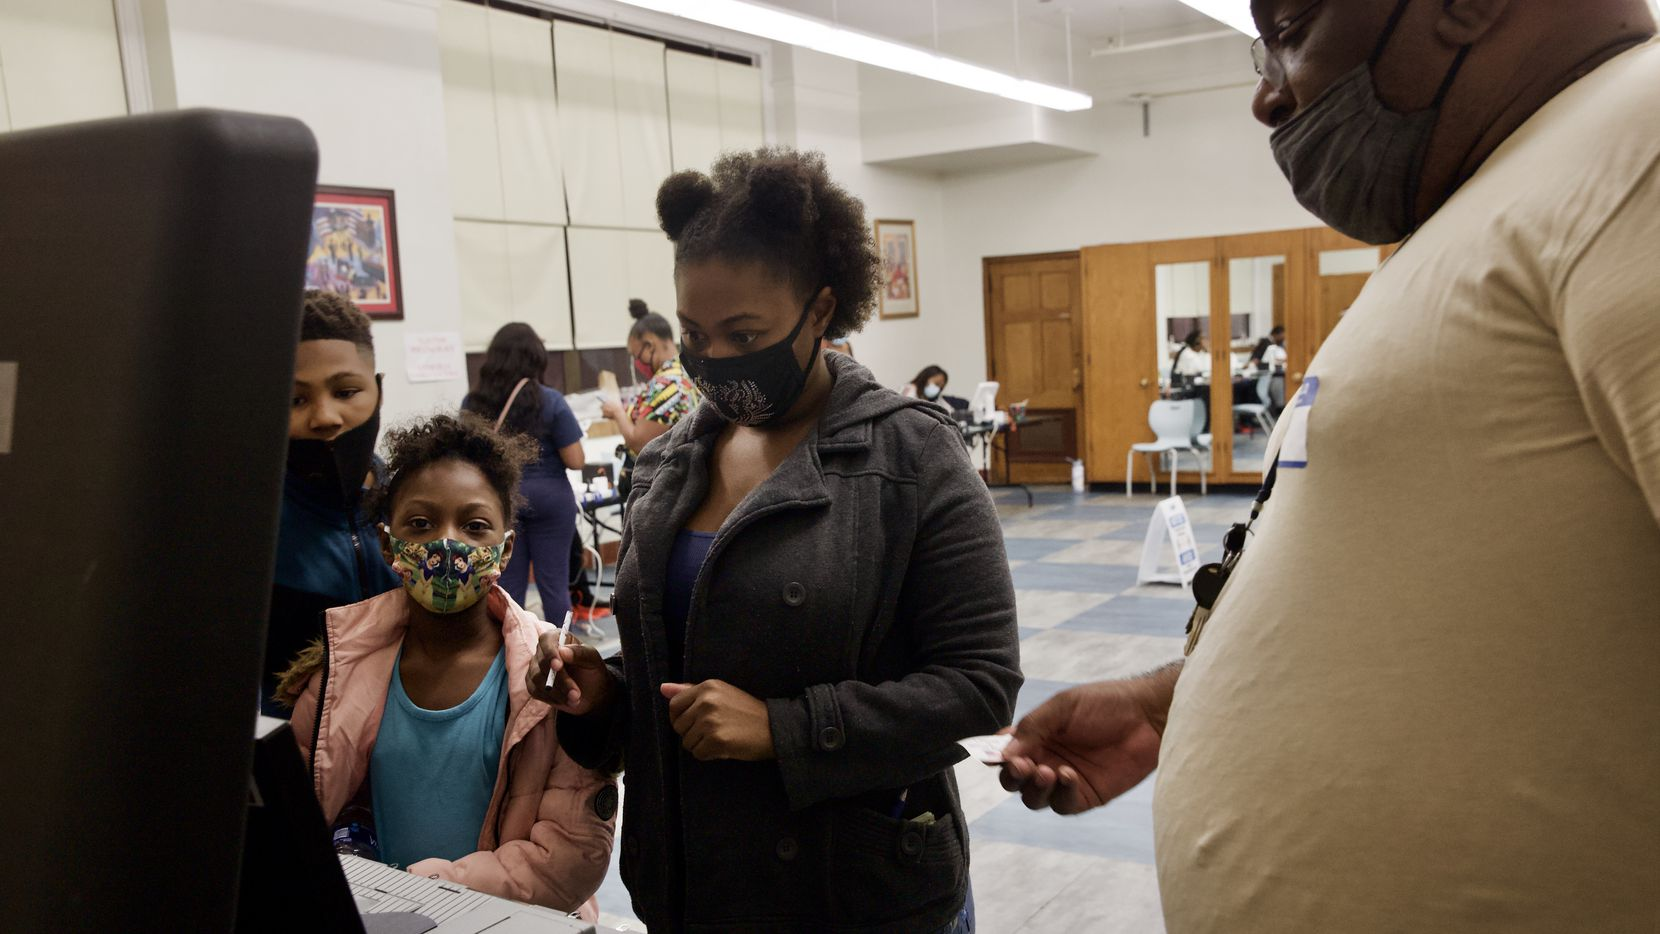 Krystal White (center) casts a ballot in the general election as her children Perell (left) and Keyelle (second from left), 9, and election clerk Darrell Brown, look on at James Madison High School in South Dallas on Election Day on Nov. 3, 2020.